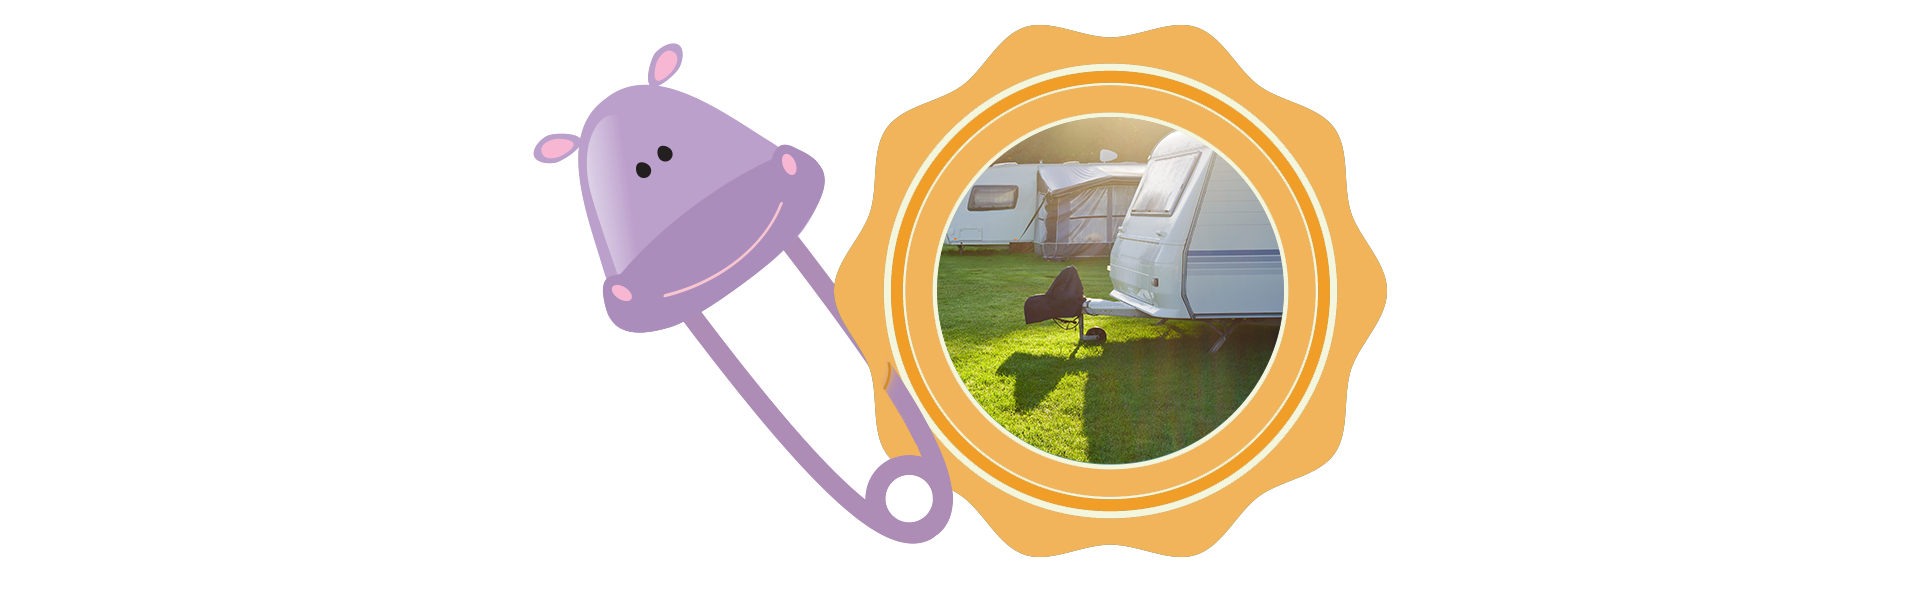 badge and baby pin of hippo holding image of travel trailer RVs on grass